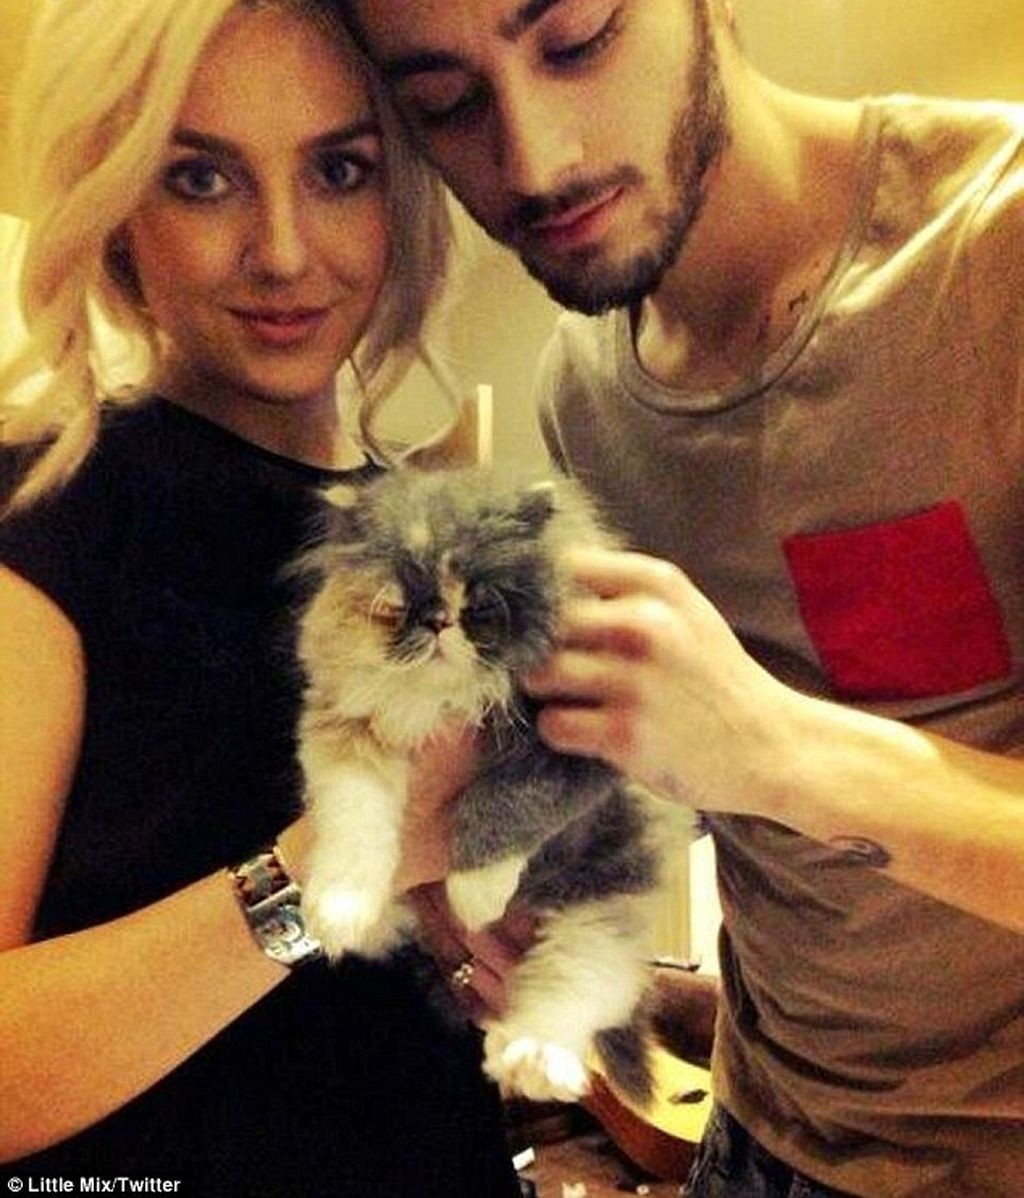 Perrie Edwards y Zayn Malik de 'One Direction'  tienen un… ¡Gato!